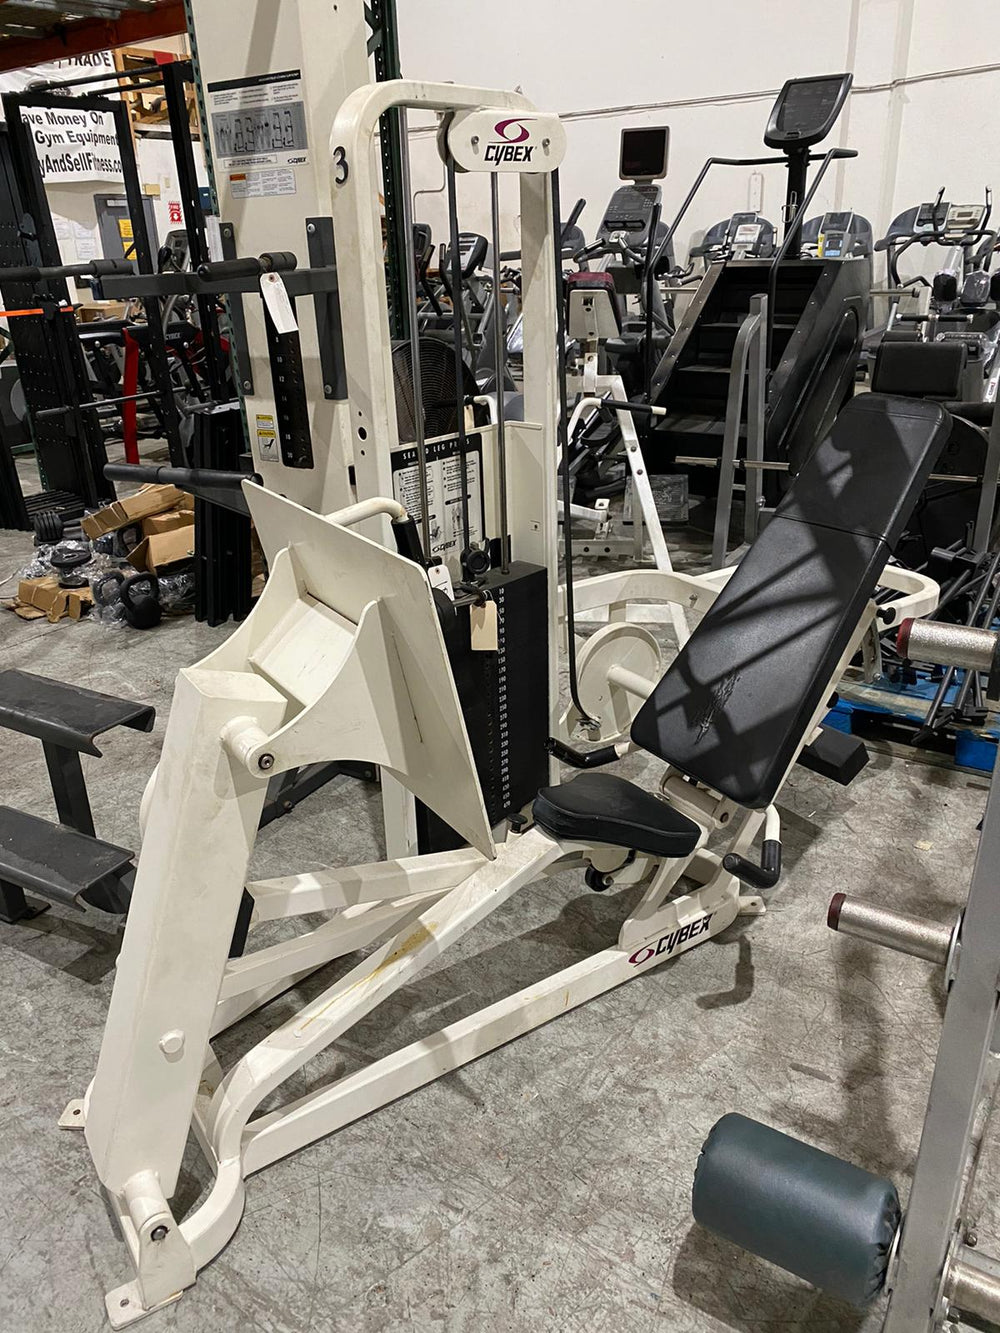 Cybex Vr2 Seated Leg Press - USED - Buy & Sell Fitness